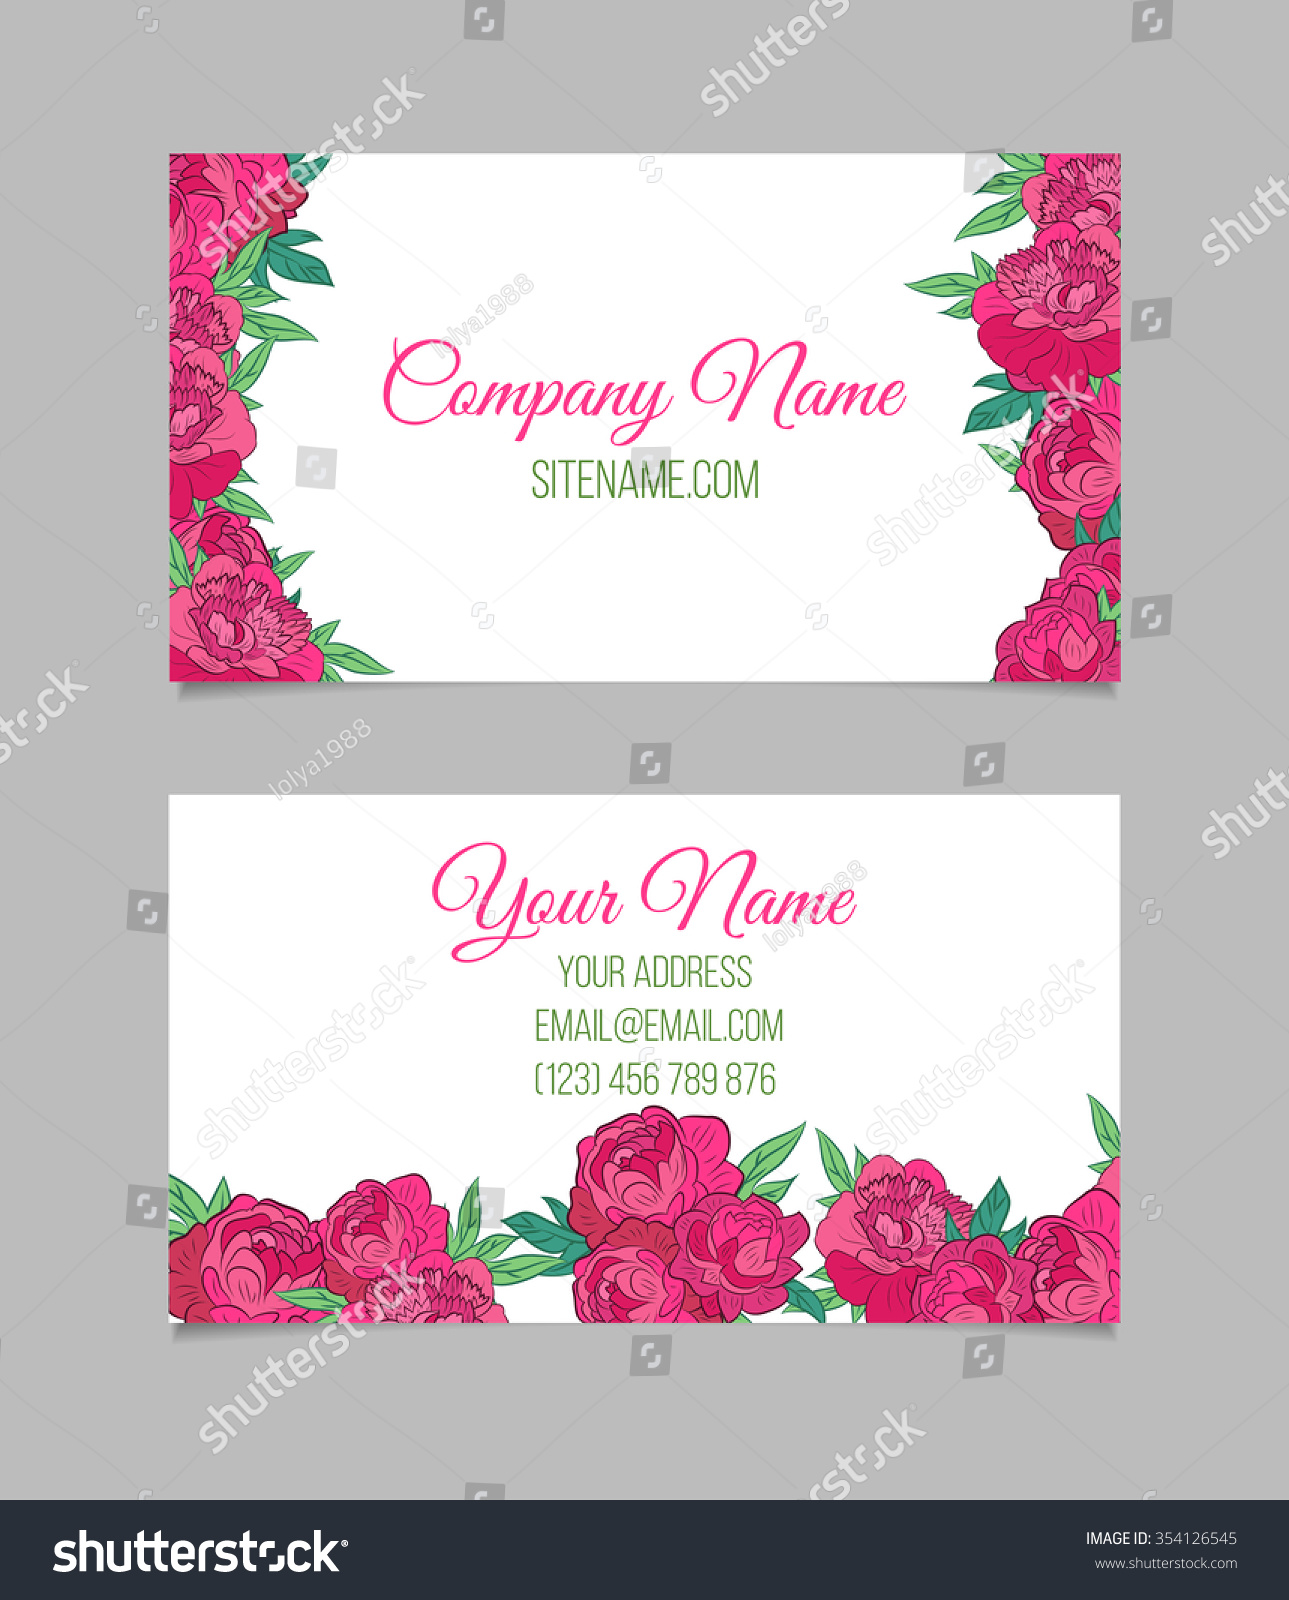 Doublesided Floral Business Card Template Pink Stock Vector ...